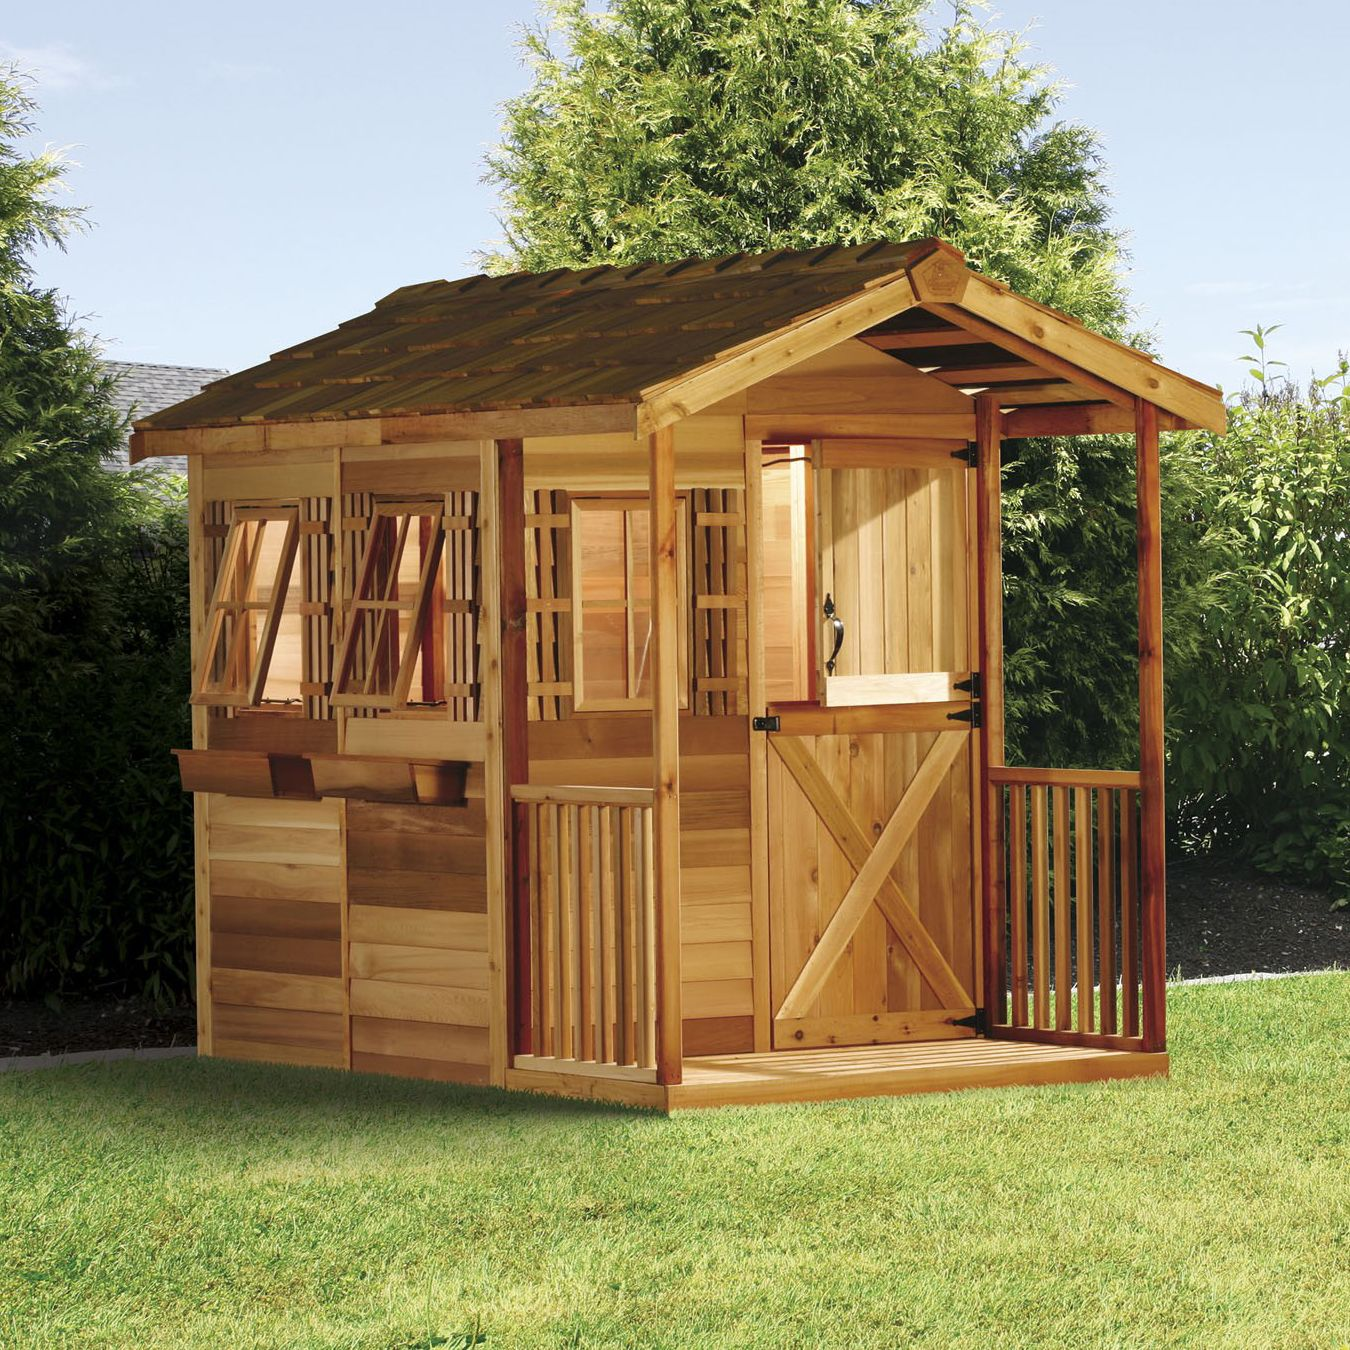 Cedar Shed 6 Ft X 9 Ft Children S Delight Shed Cd69 Play Houses Build A Playhouse Cedar Shed